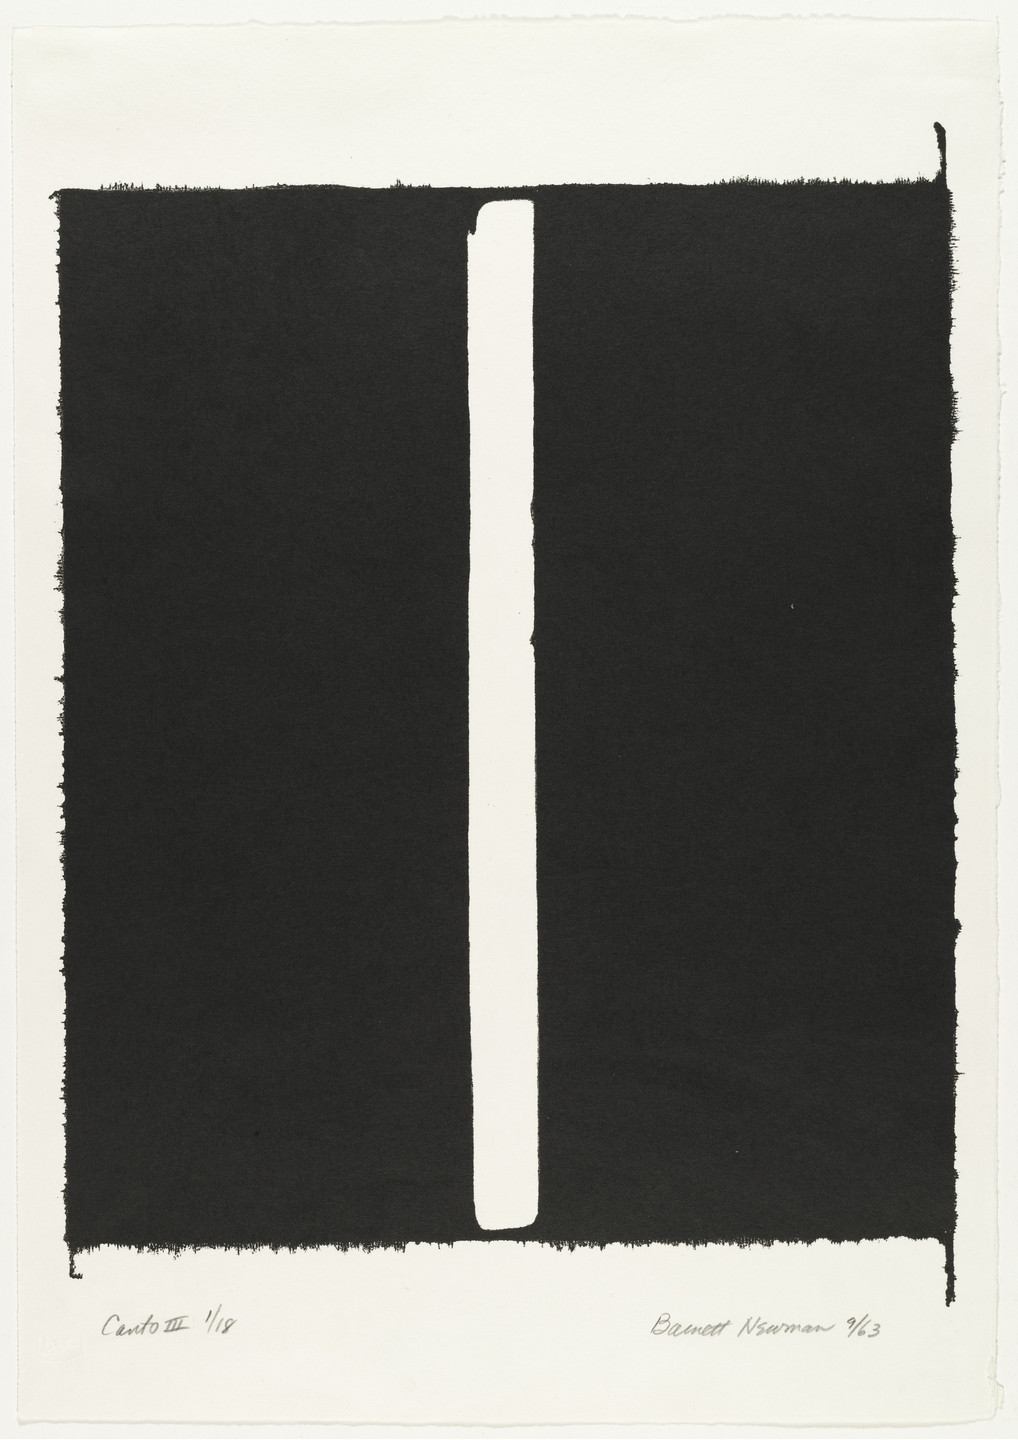 Barnett Newman. Canto III from 18 Cantos. 1963